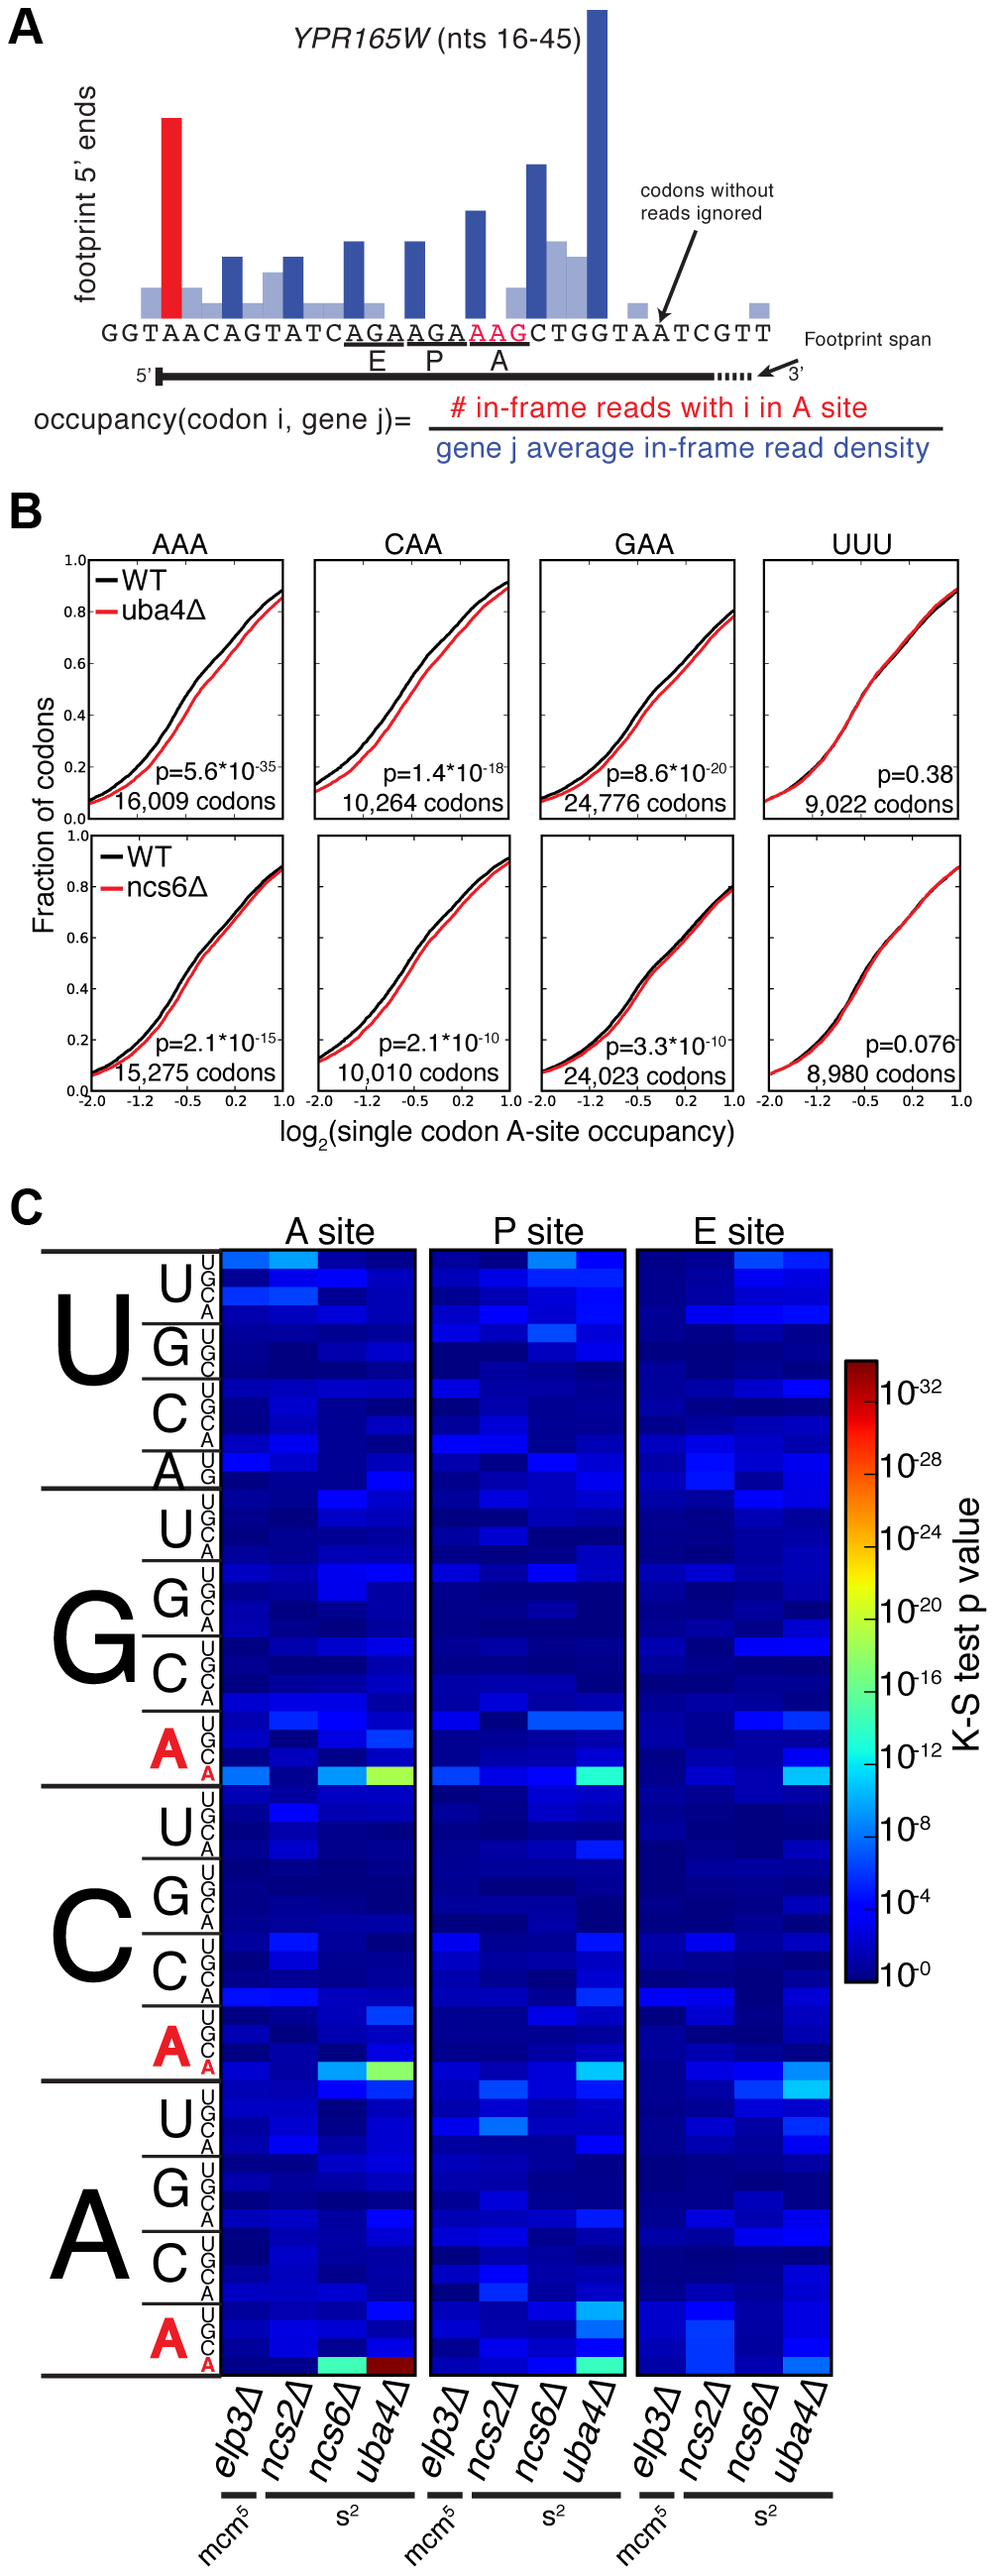 A single-codon occupancy metric shows that ribosome footprint accumulations at AAA, CAA, and GAA are statistically significant.